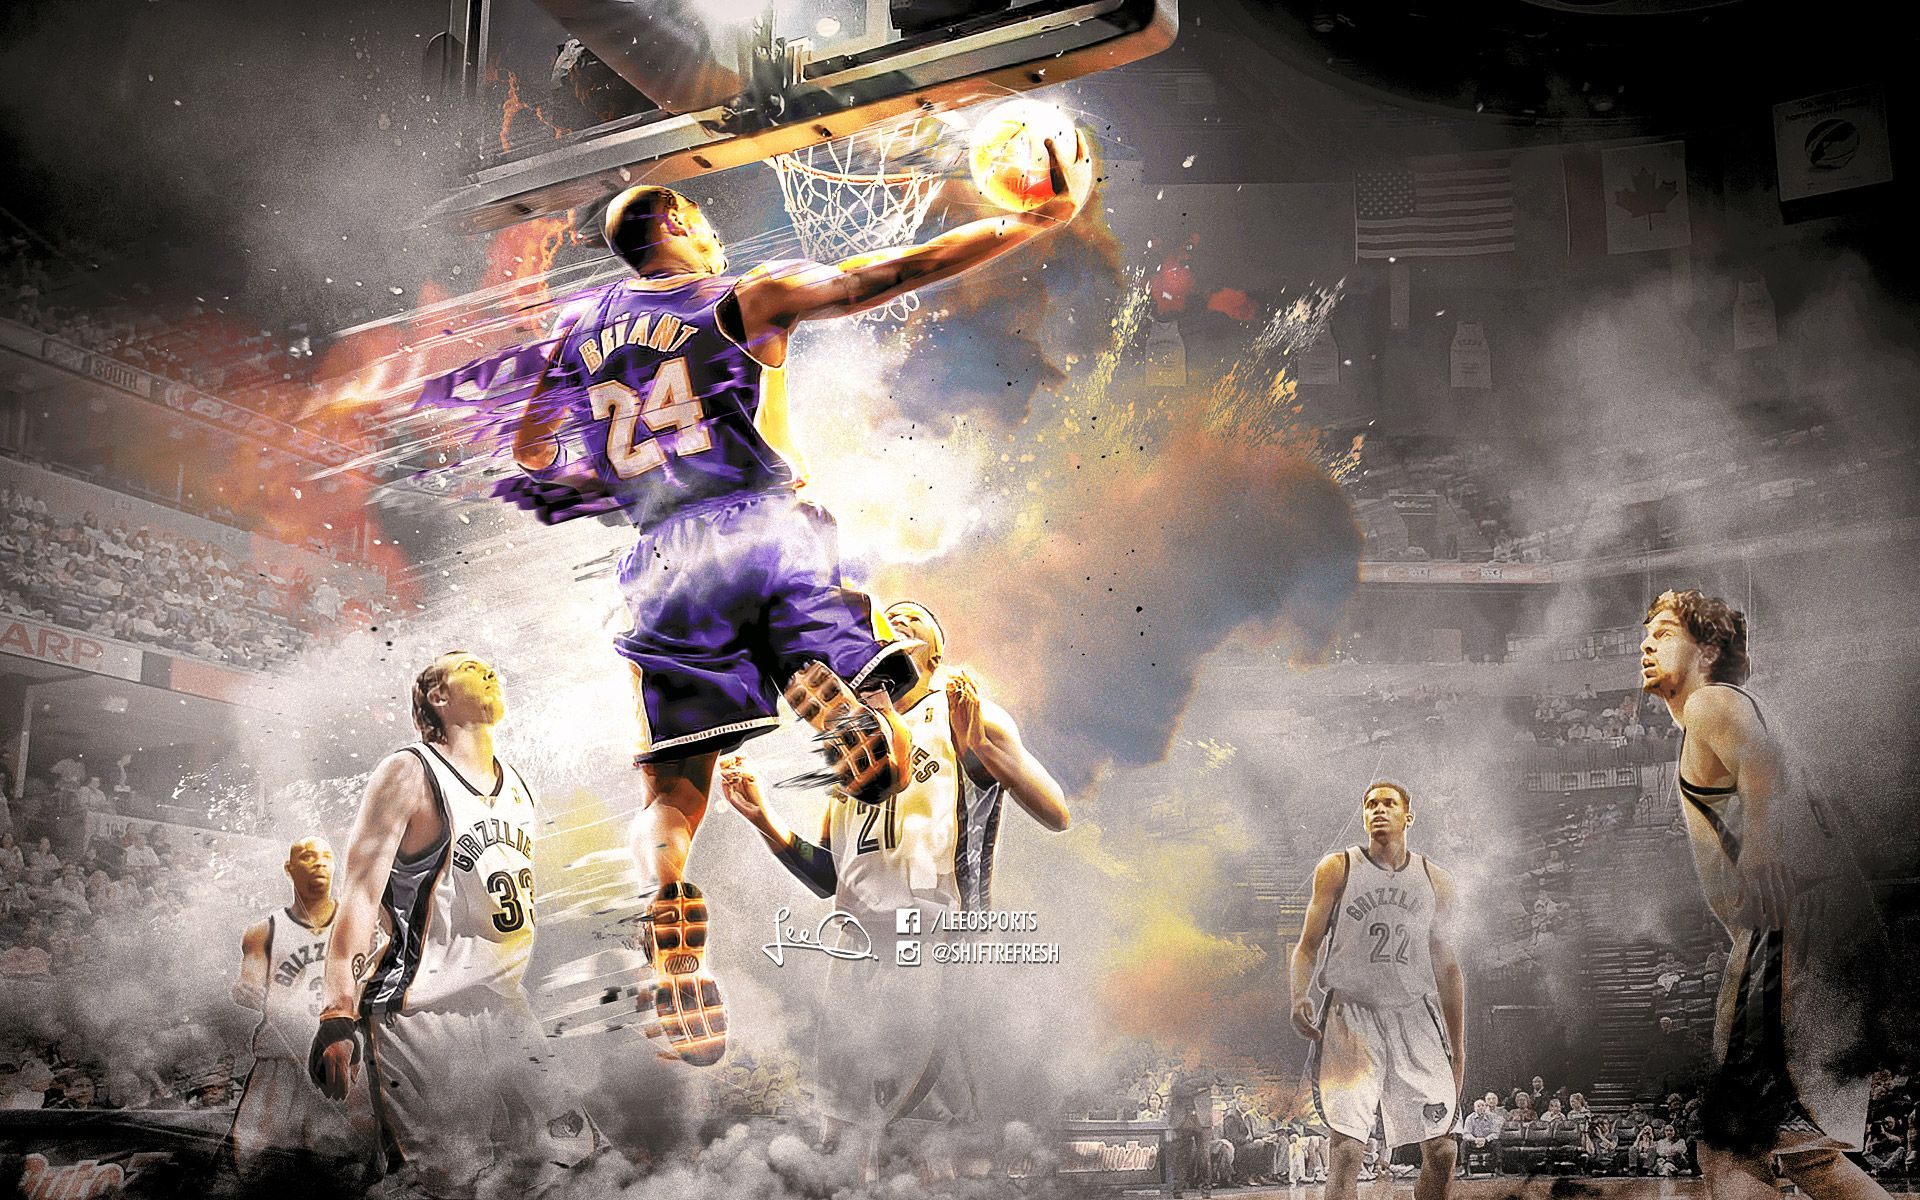 Kobe Bryant Wallpapers Basketball Wallpapers at Kobe